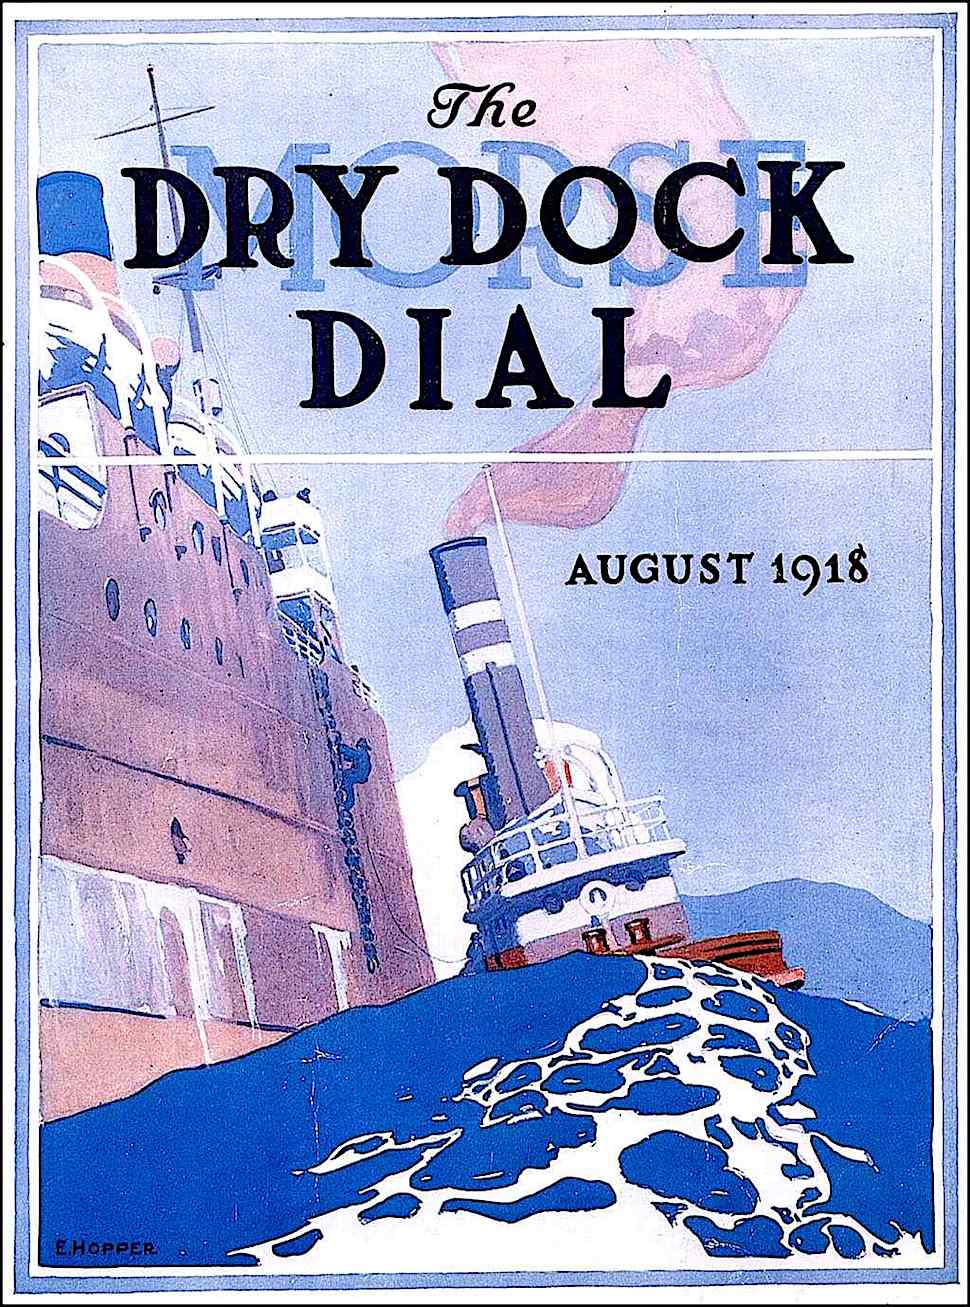 an Edward Hopper illustration for the August 1918 Dry Dock Dial publication, a tugboat riding a swell